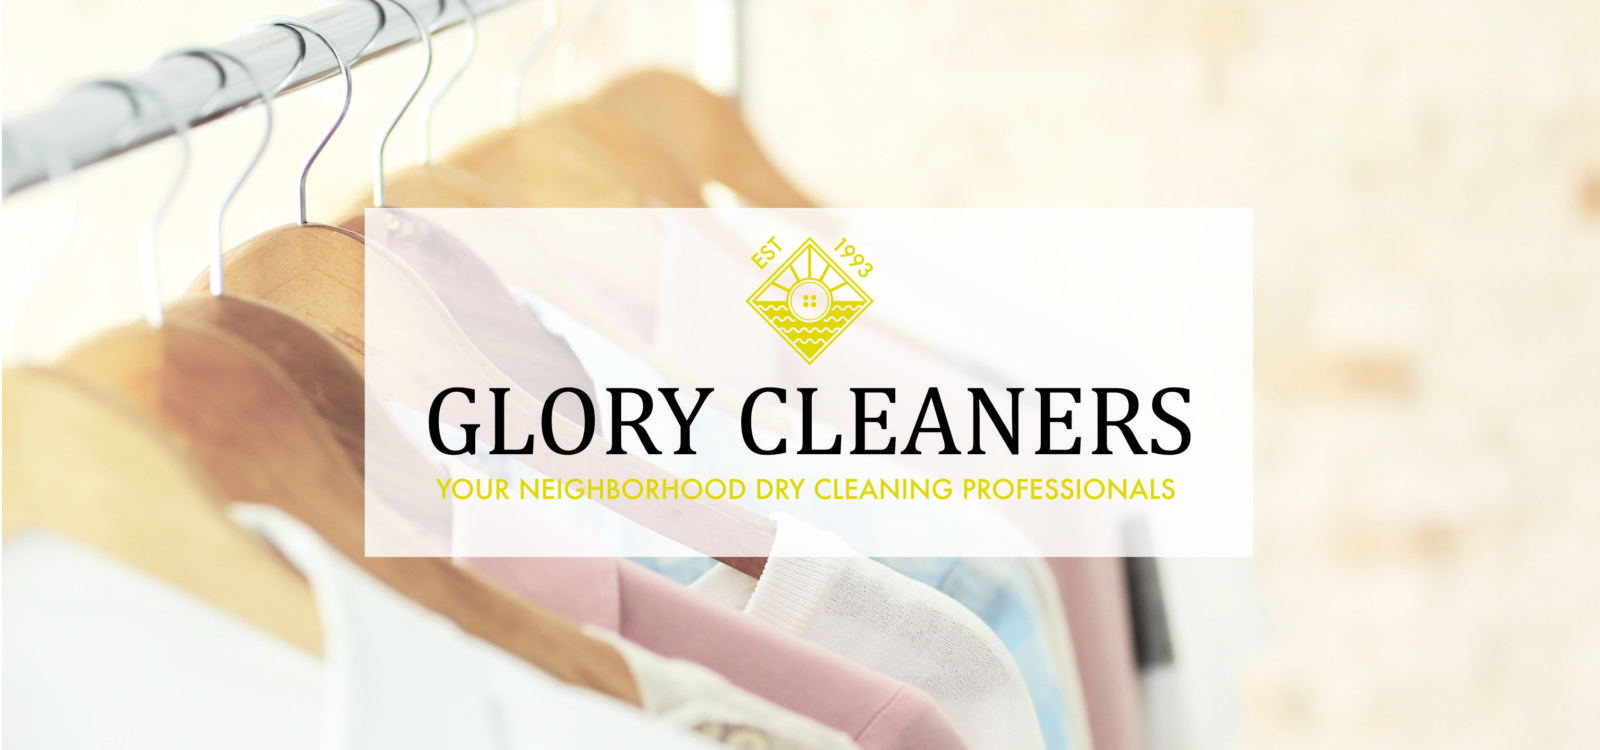 Glory Cleaners